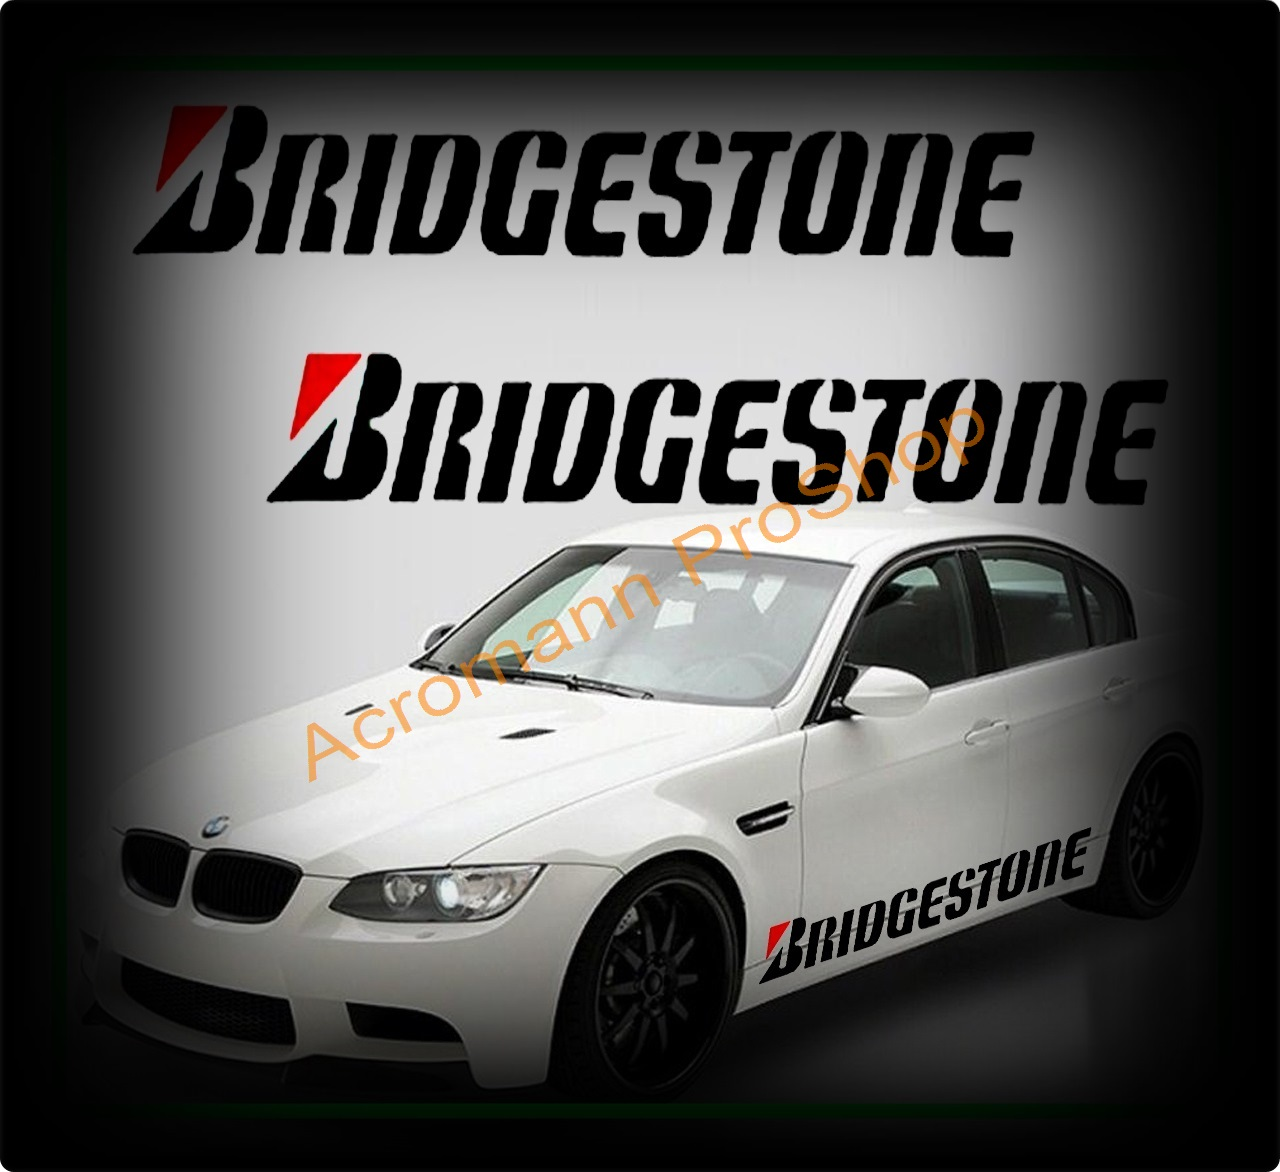 BRIDGESTONE Large Side Door Decal x 1 pair (LHS & RHS)